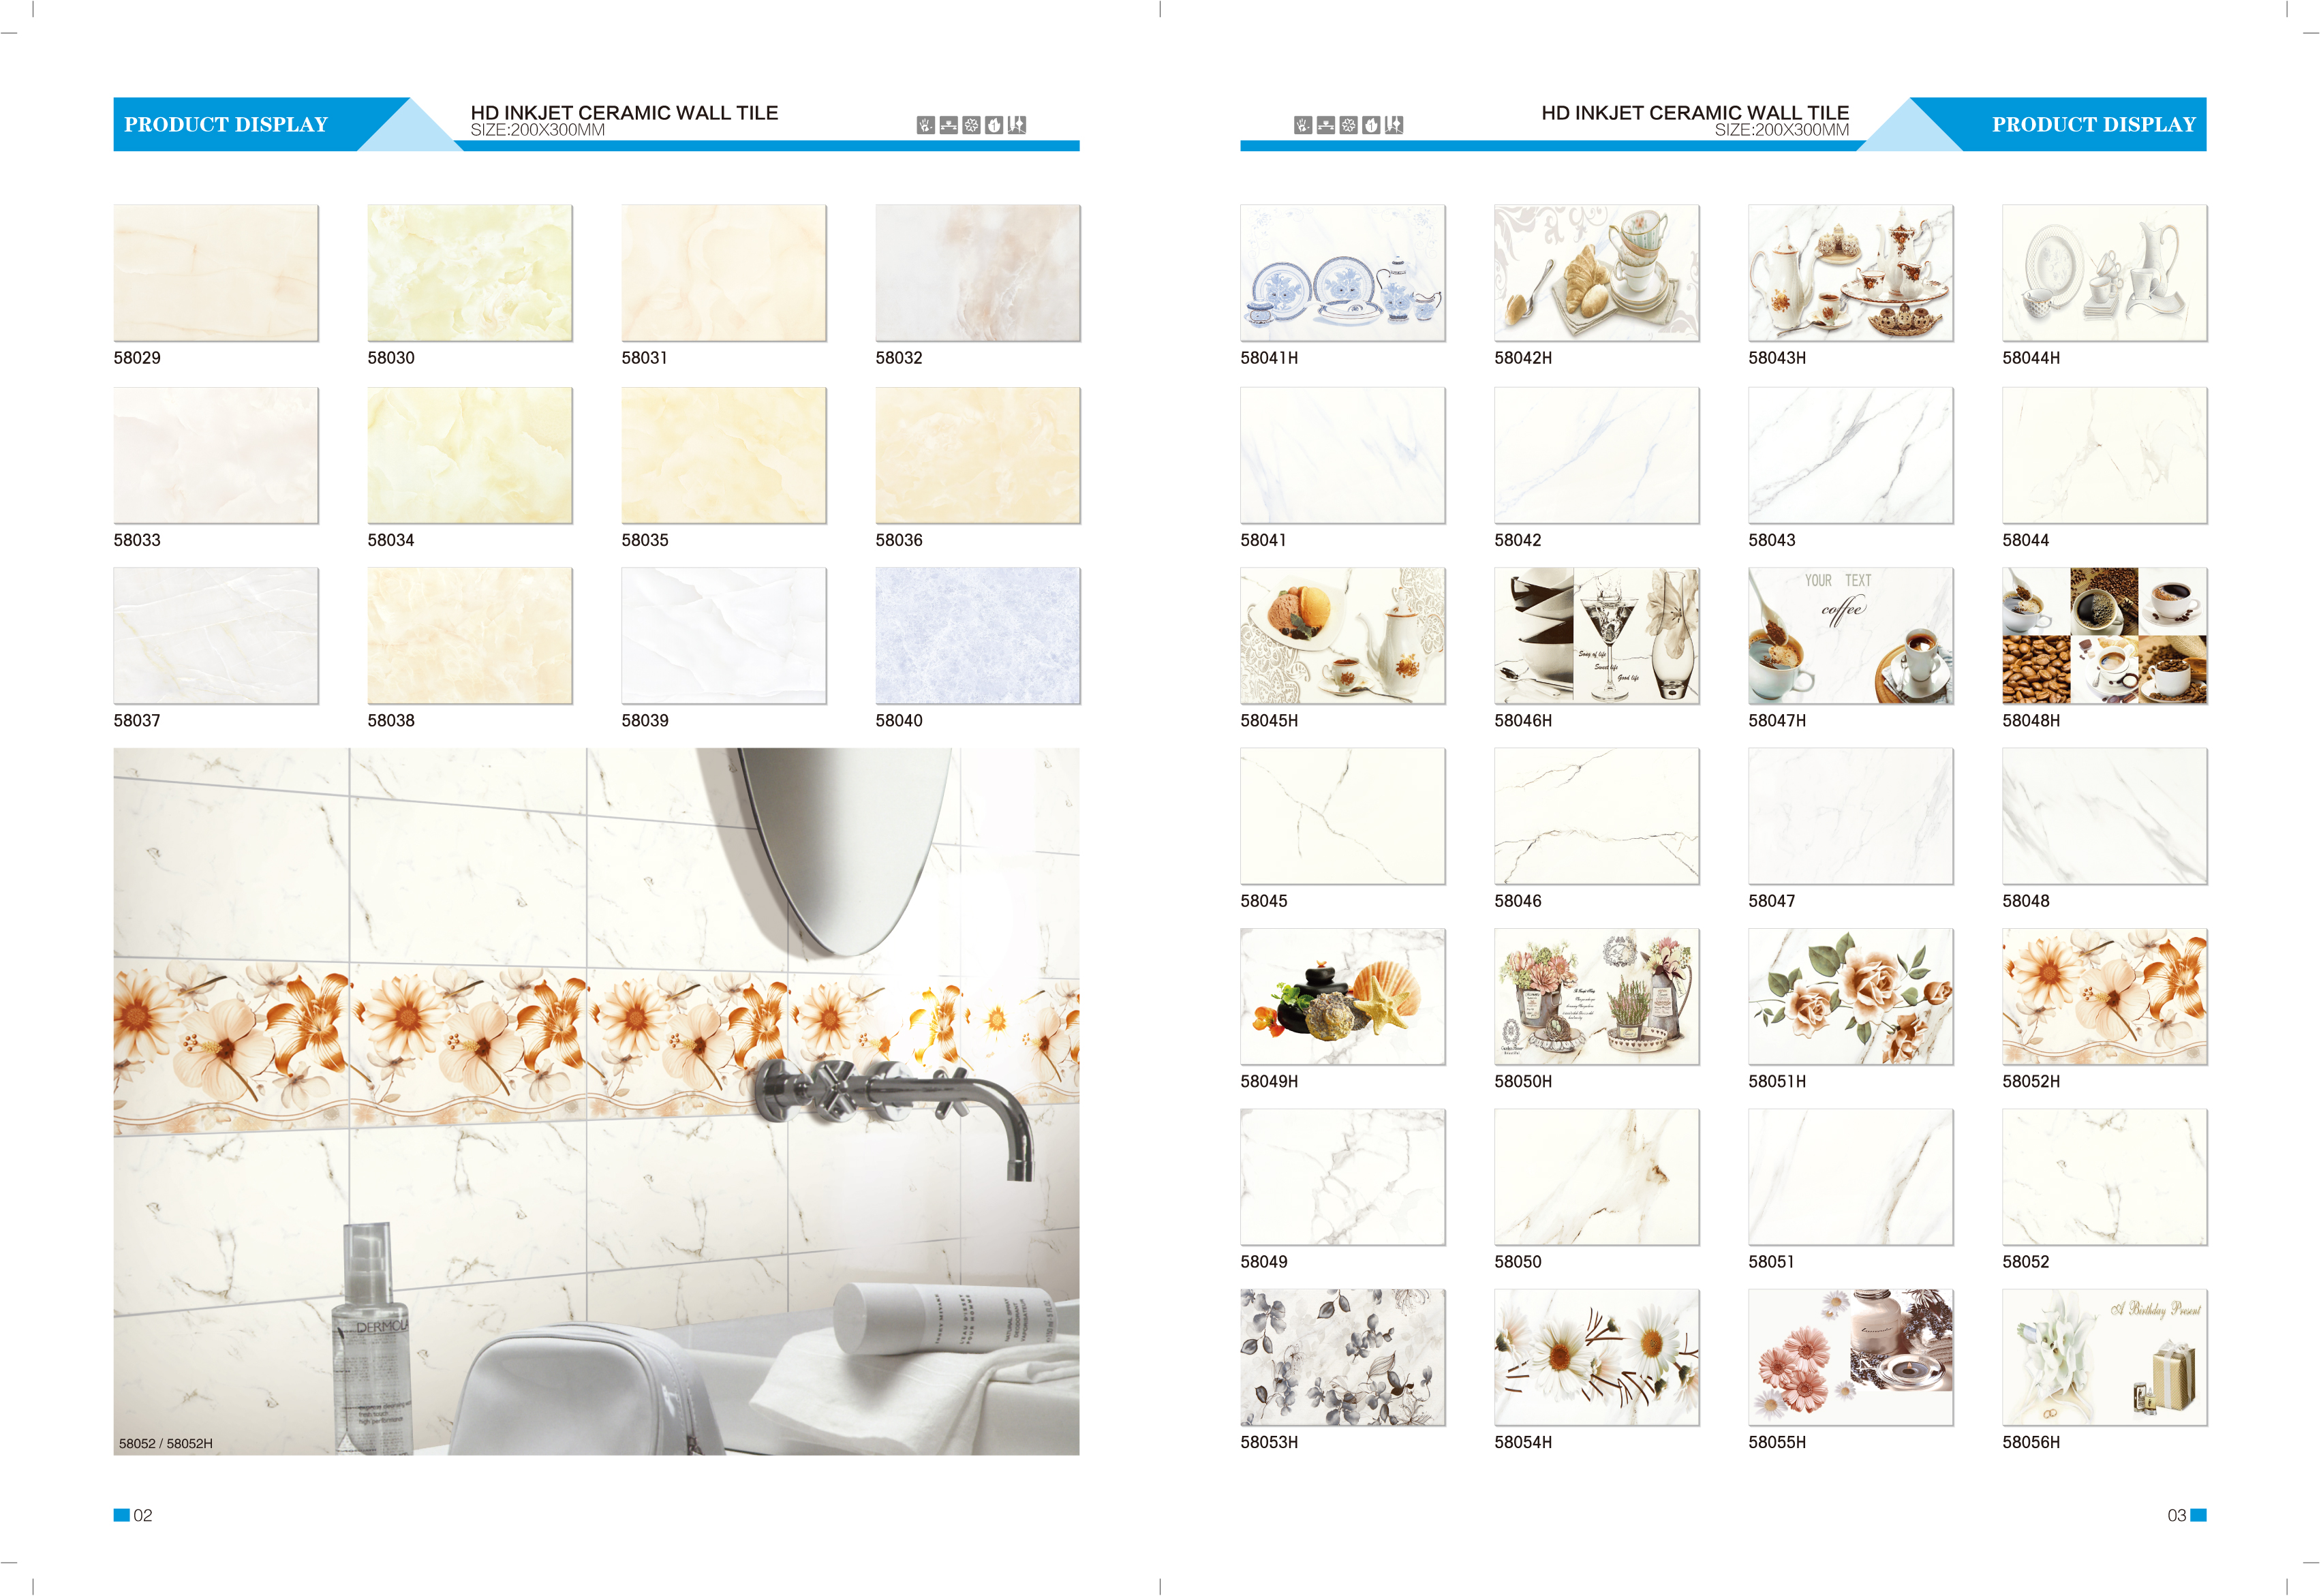 Ceramic wall tile 200x300mm